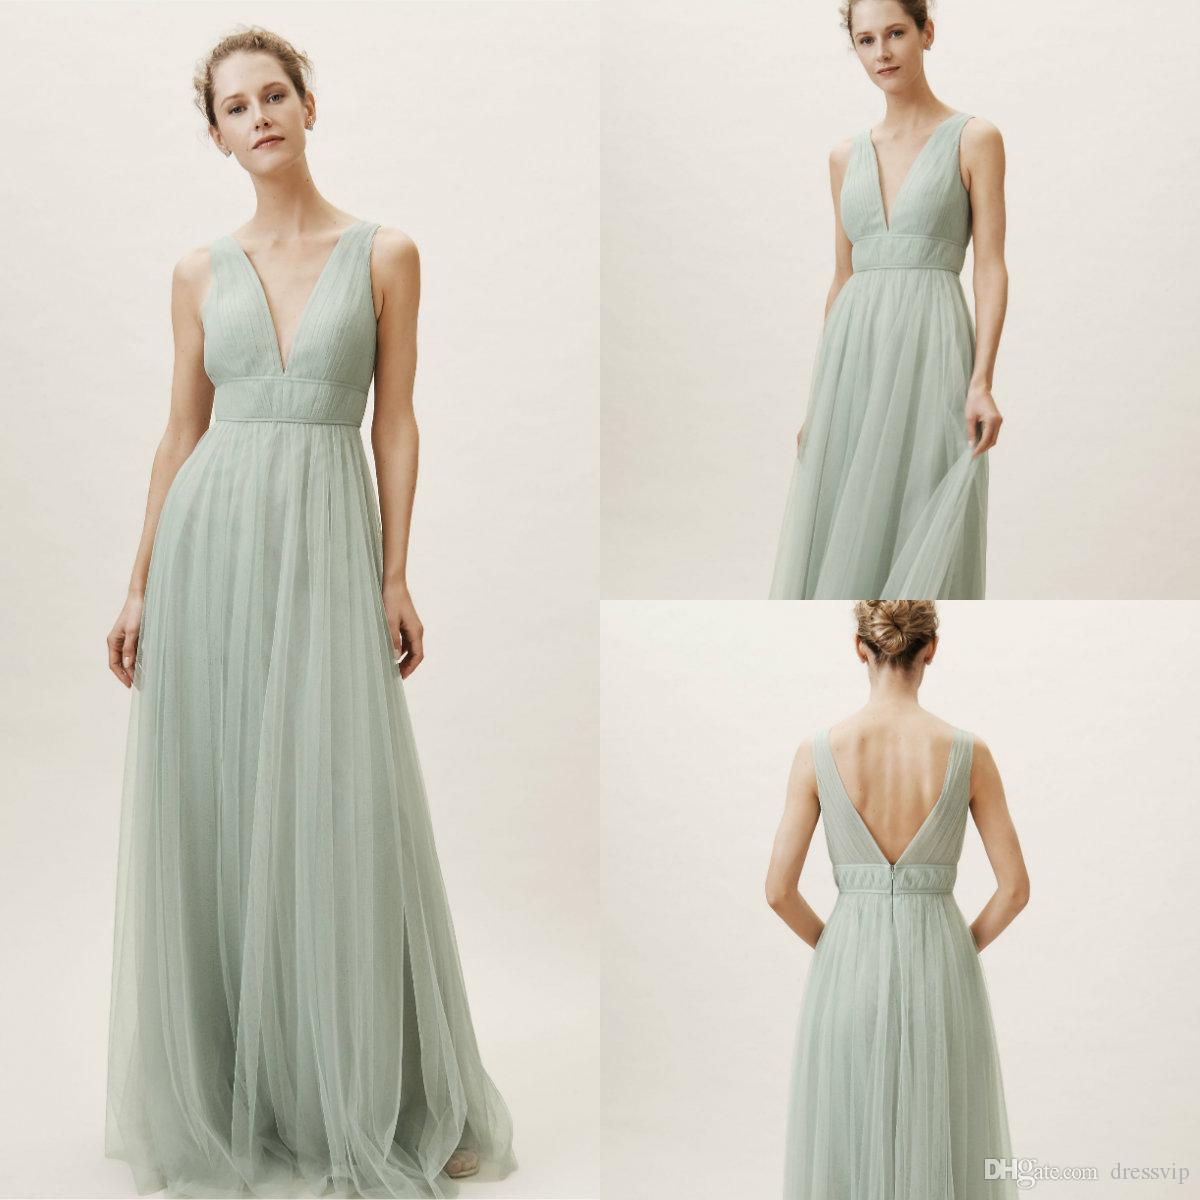 103c94a1407 2019 BHLDN Bridesmaid Dresses V Neck Tulle Sleeveless Floor Length Mint  Green Formal Occasion Dress Cheap Evening Gowns Yellow Bridesmaids Dresses  ...